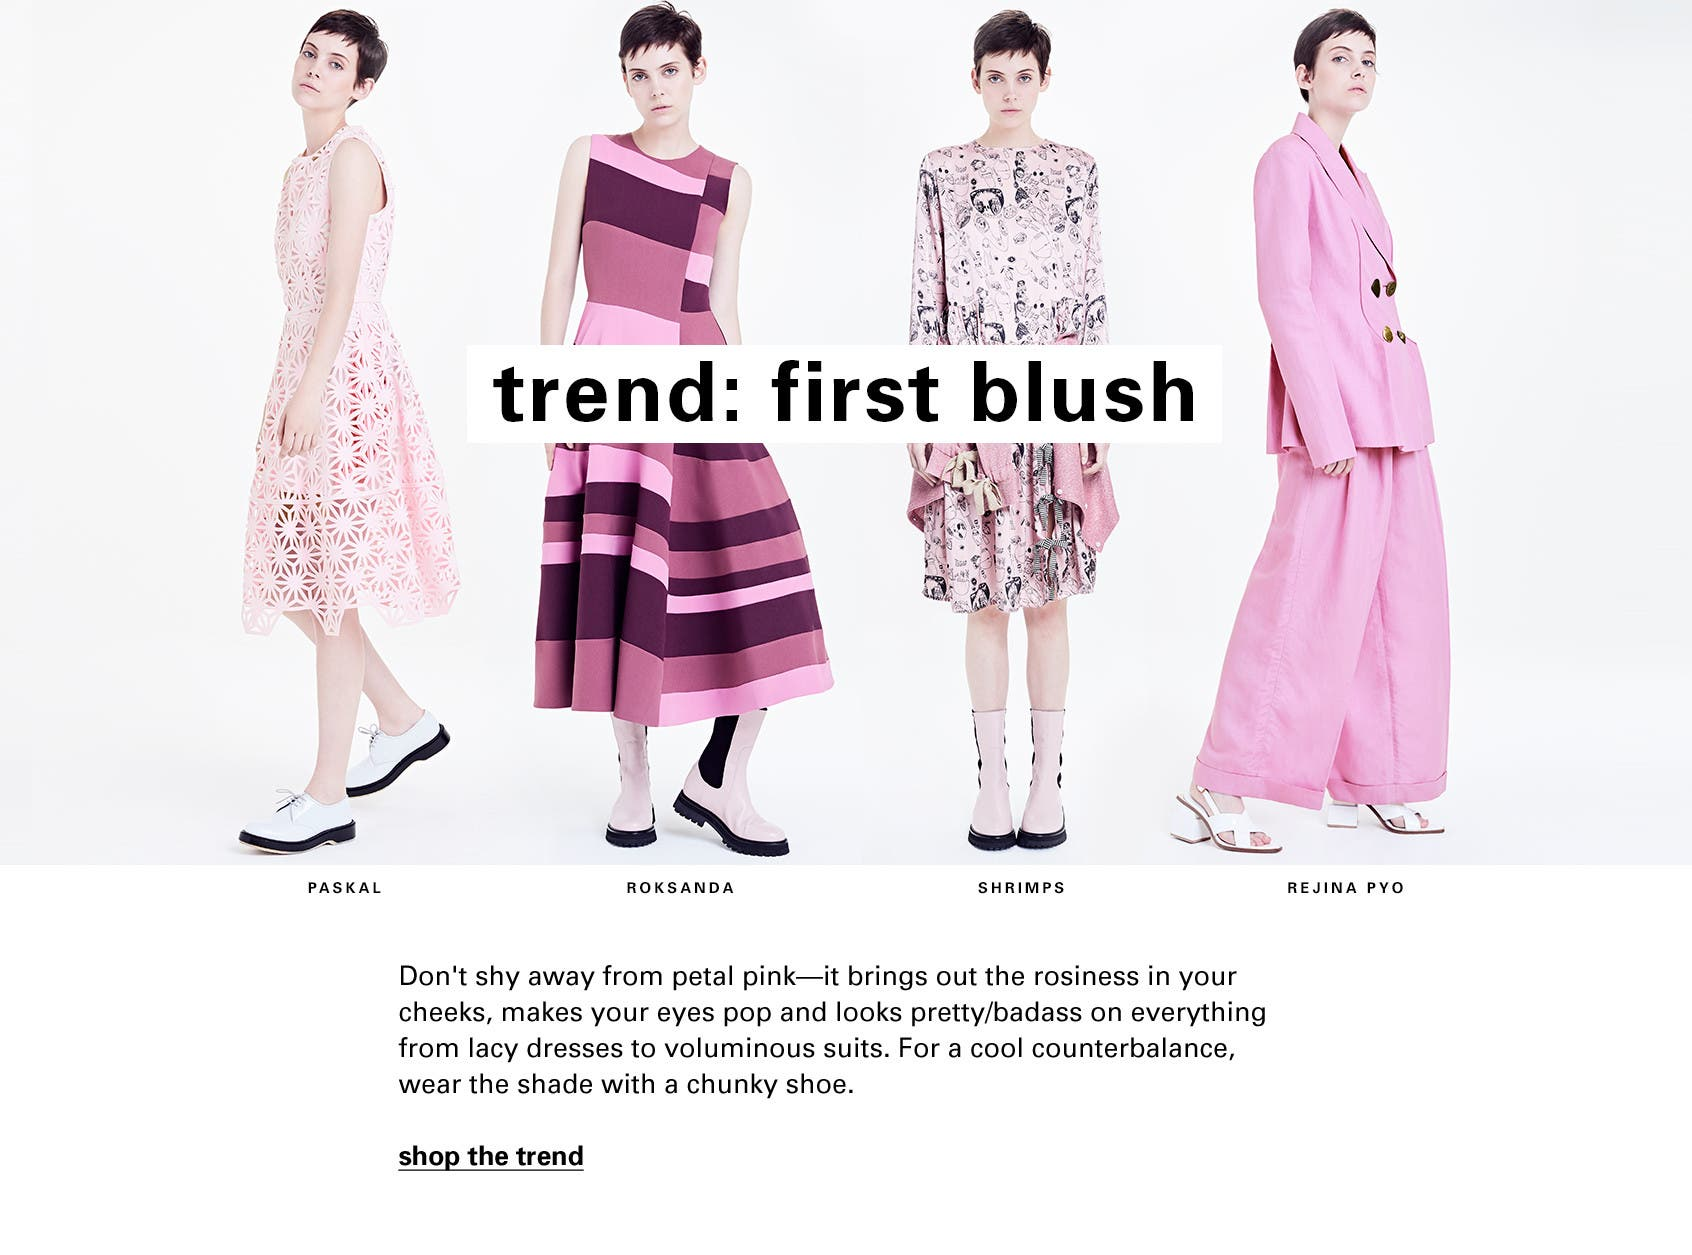 Shop the blush-pink trend from PASKAL, Roksanda, Shrimps and Rejina Pyo at Nordstrom SPACE.